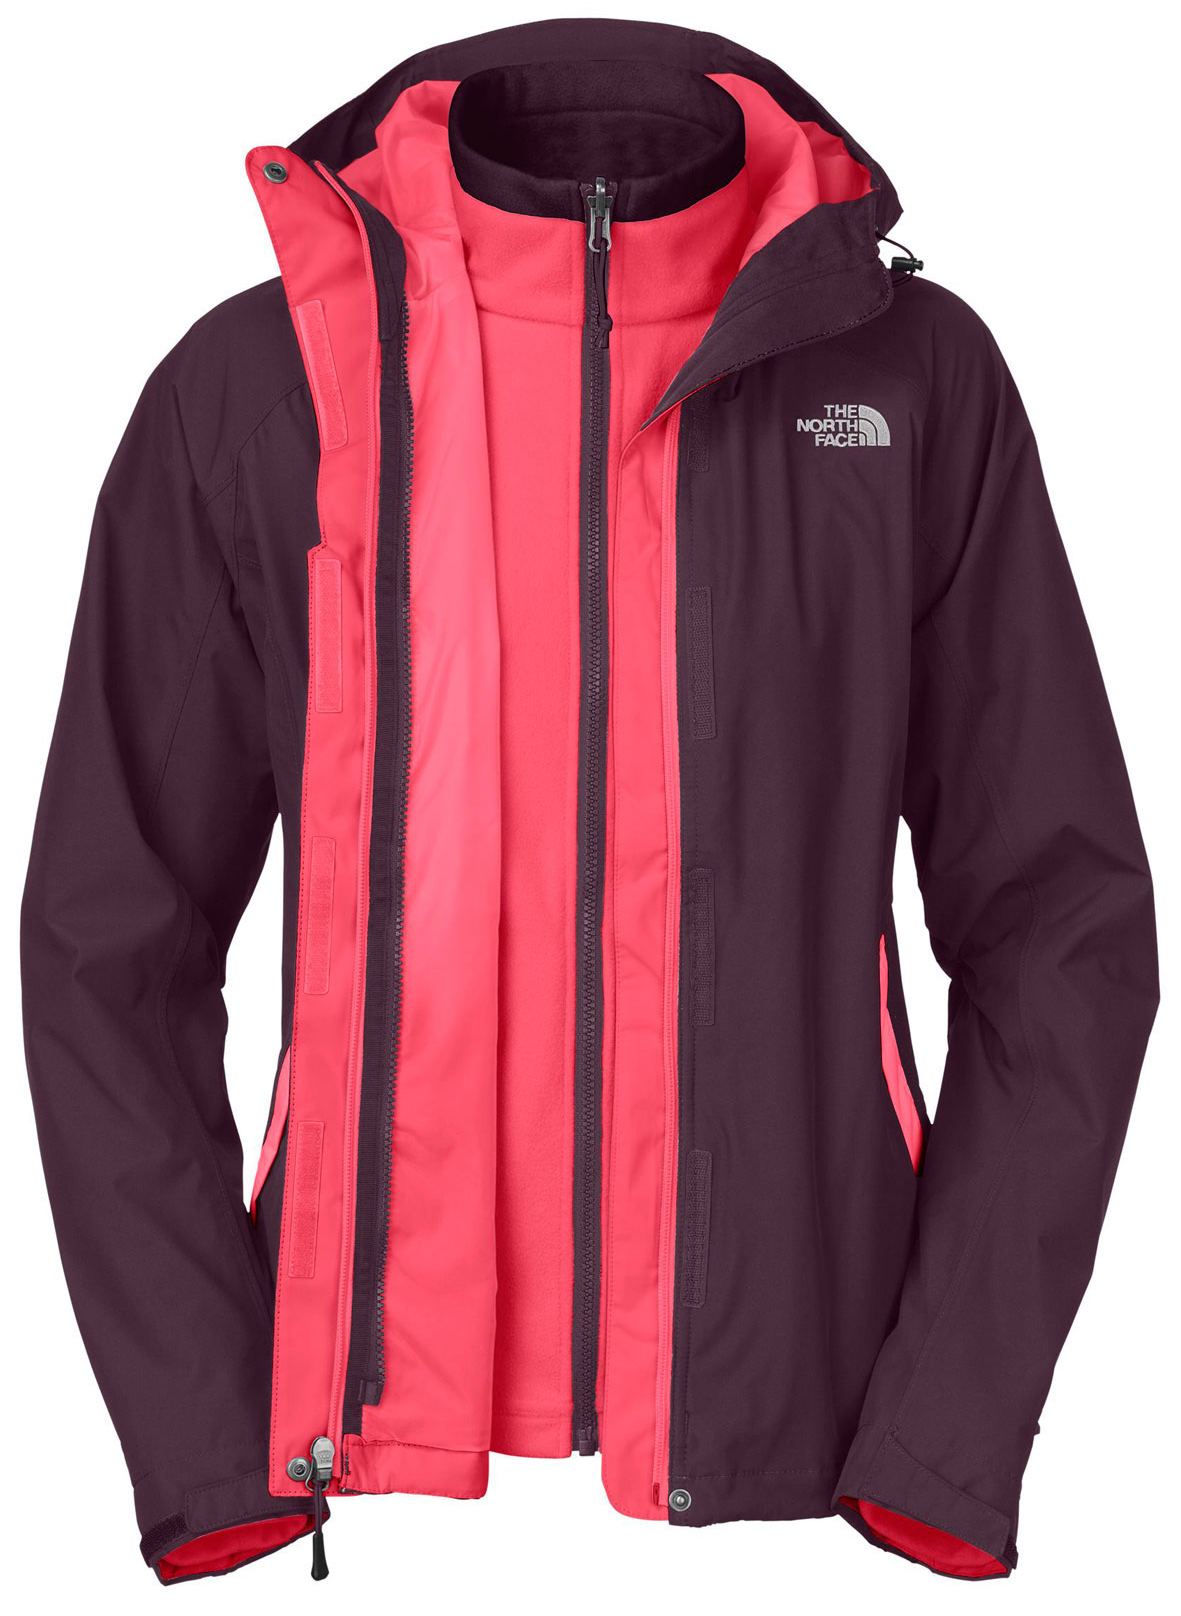 Key Features of The North Face Evolve Triclimate Jacket: Fabric: body: 75D 110 g/m2 (3.19 oz/yd2) 100% polyester HyVent® 2L Triclimate® insulation: 100 g micro-fleece TBD. Waterproof, breathable, seam sealed Attached, fully adjustable hood Zip-in compatible Brushed collar lining for comfort Center front double storm flap with zip and Velcro® closure Two hand pockets Self fabric cuff tabs Hem cinch-cord [TRICLIMATE® ] 100 g fleece Two hand pockets - $149.95